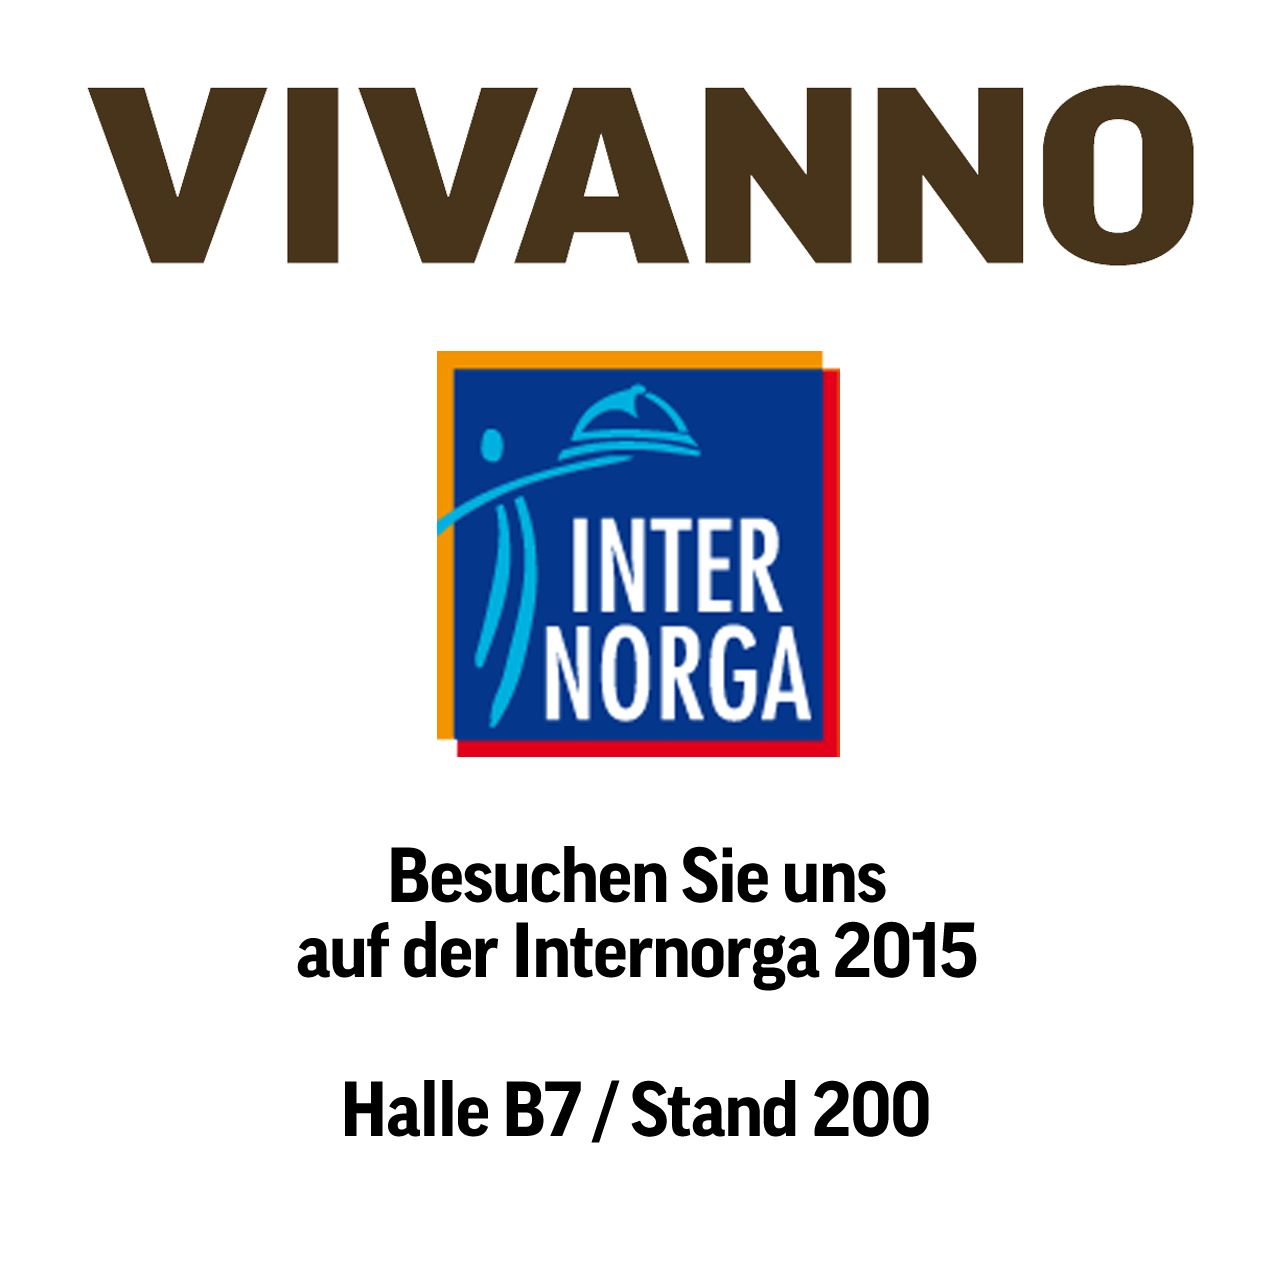 besuchen sie uns ae trade online mit vivanno auf der internorga 2015 pflanzk bel blog von. Black Bedroom Furniture Sets. Home Design Ideas